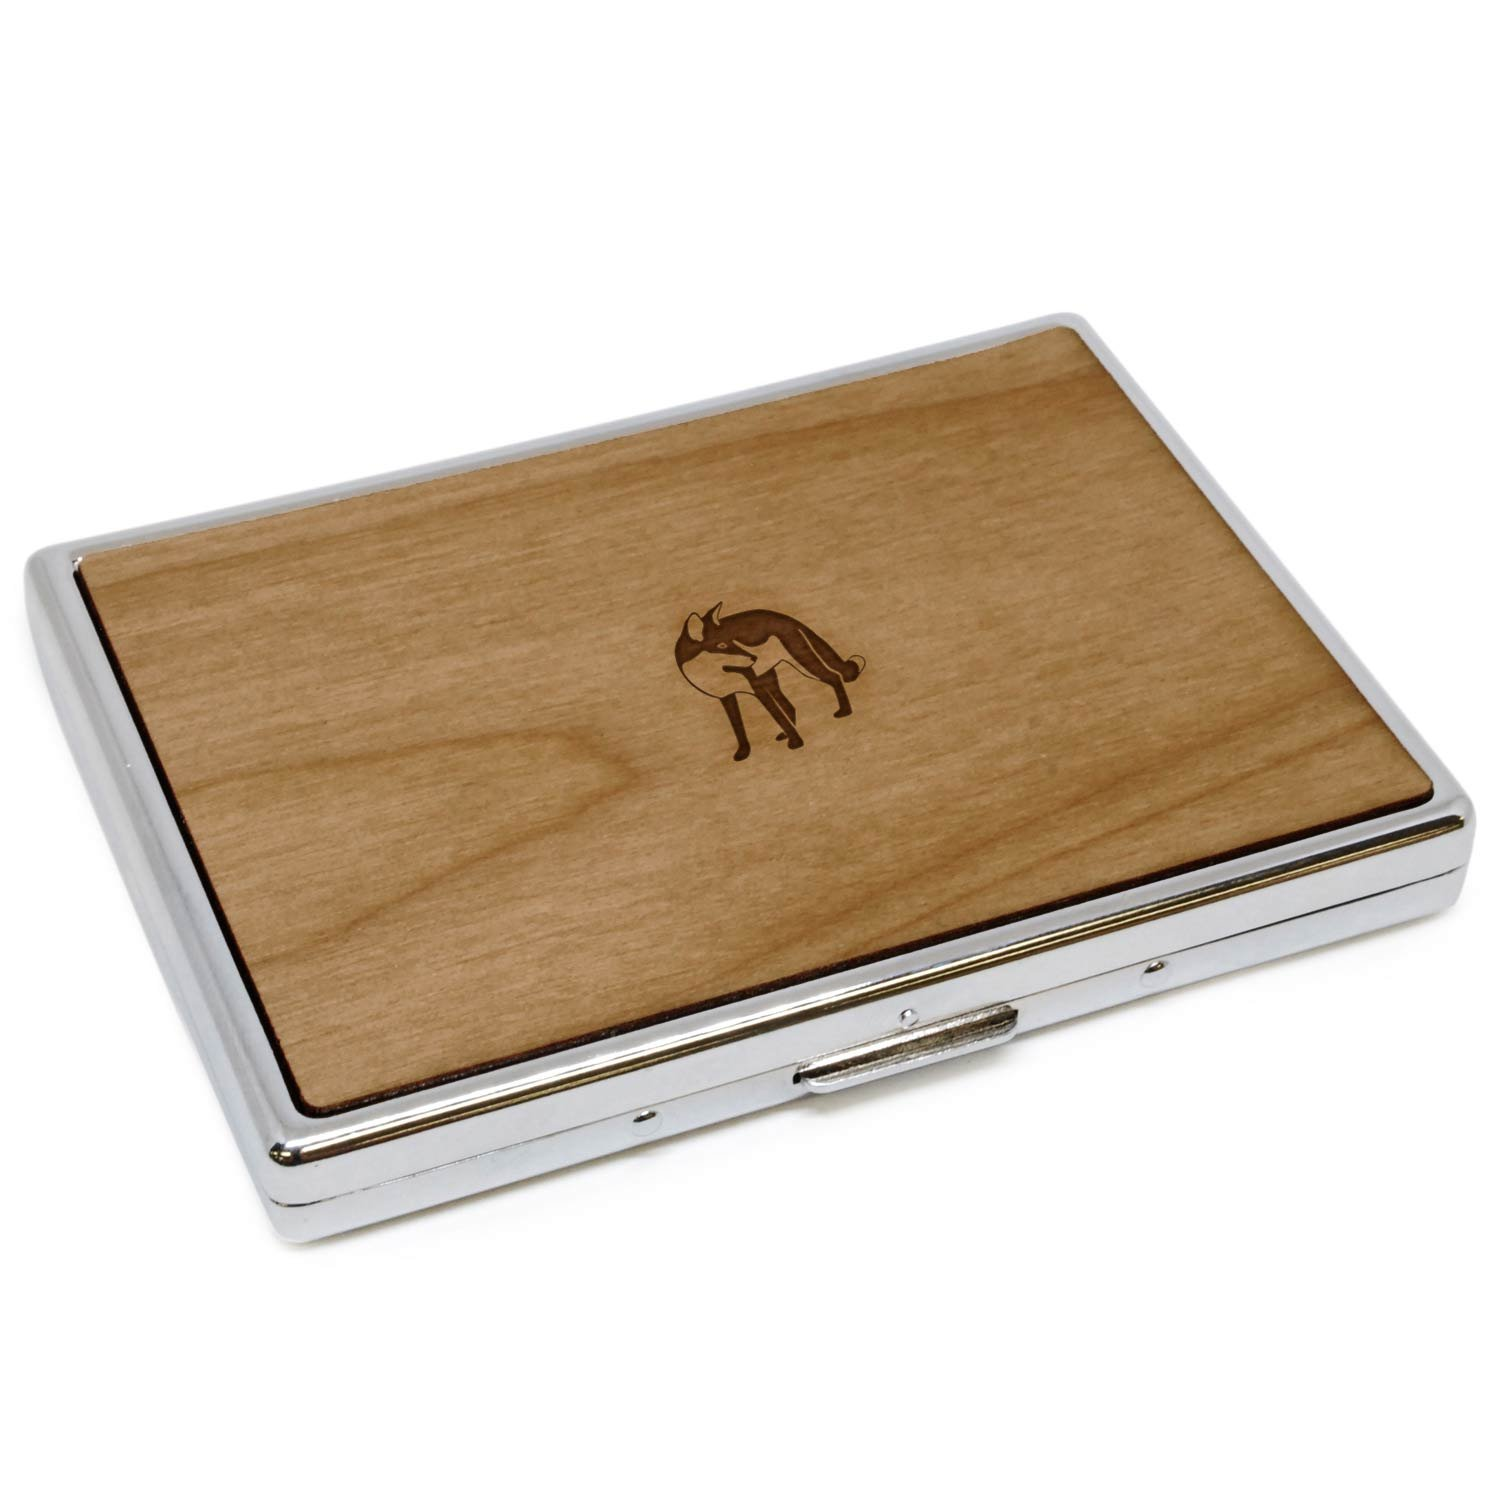 WOODEN ACCESSORIES COMPANY Wooden Cigarette Cases With Laser Engraved Fox Design - Stainless Steel Cigarette Case With Wooden Panel - Perfect Fit For Regular And King Size Cigarettes